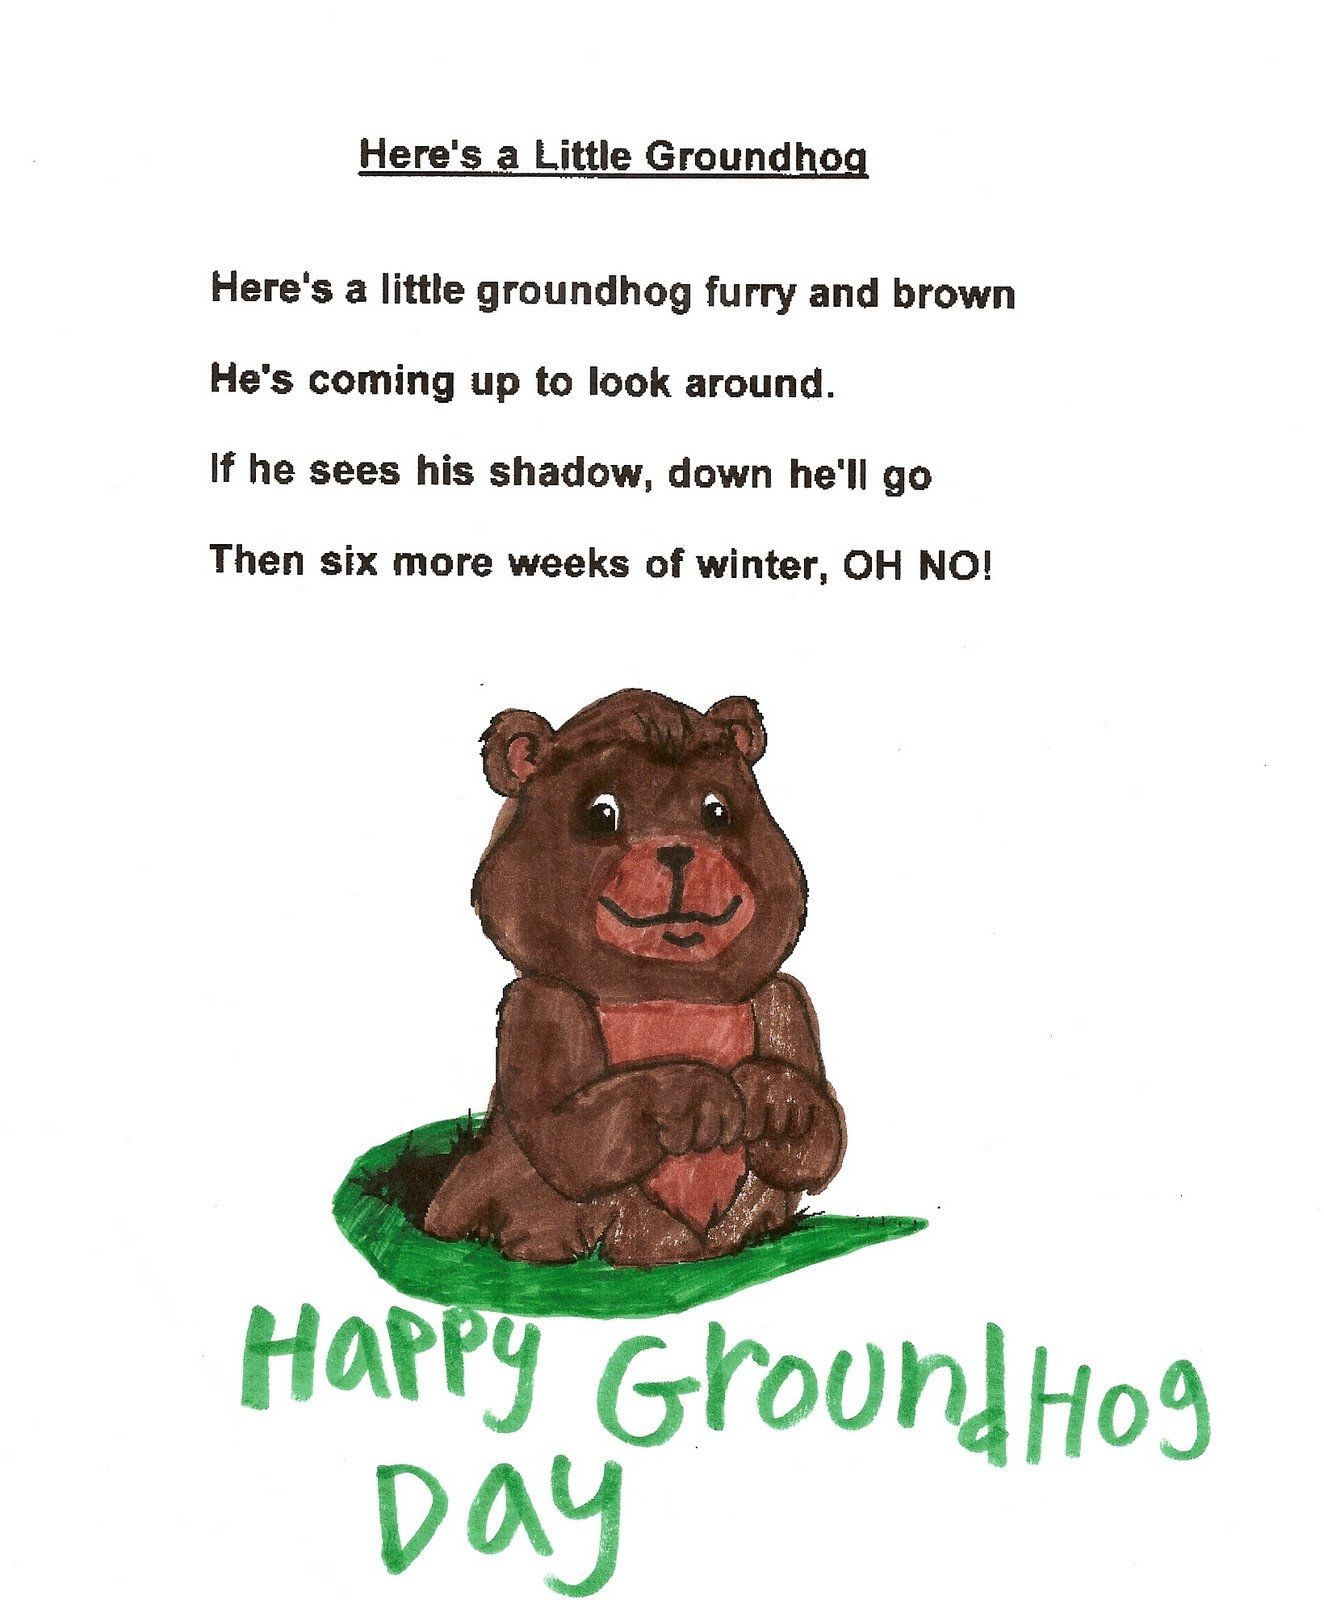 Happy Groundhog Day Pictures, Photos, and Images for Facebook